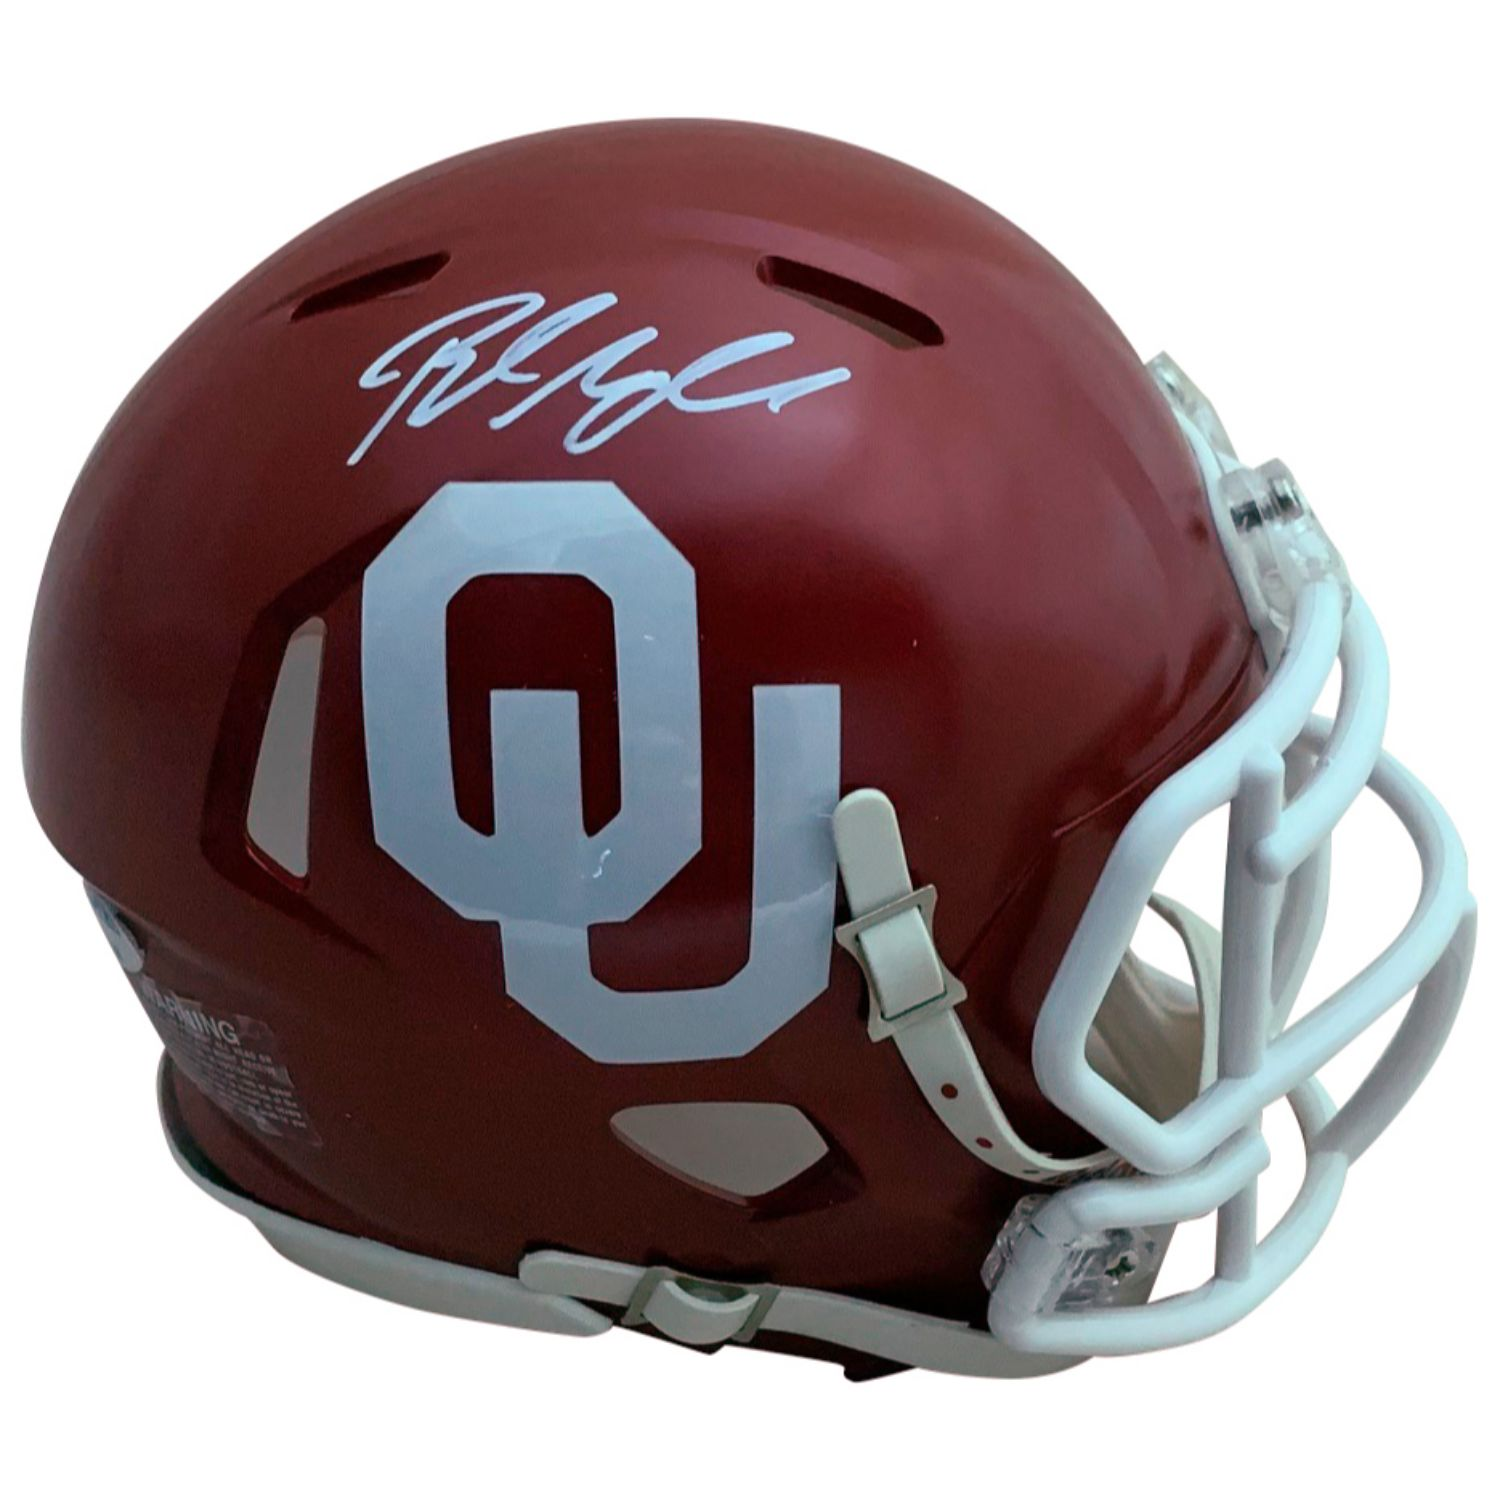 Baker Mayfield Autographed Oklahoma Sooners Signed Football Speed Mini Helmet PSA DNA COA